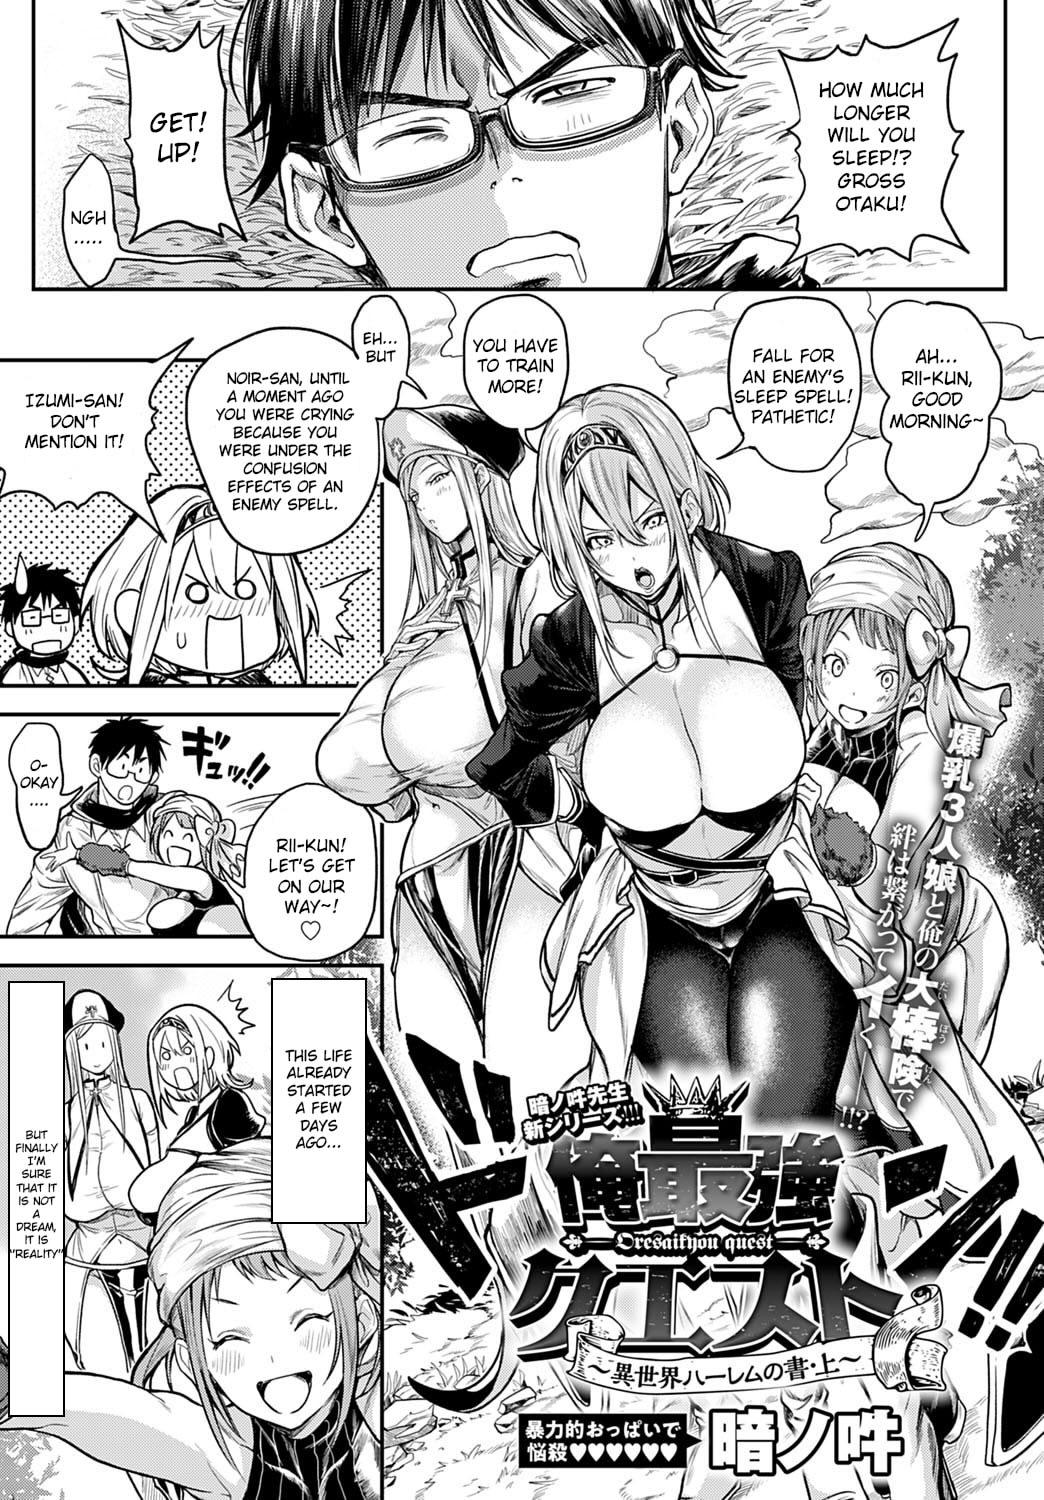 [Announ] Ore Saikyou Quest ~Isekai Harem no Sho~ | My story with my Harem in another world [English] [Digital] 0